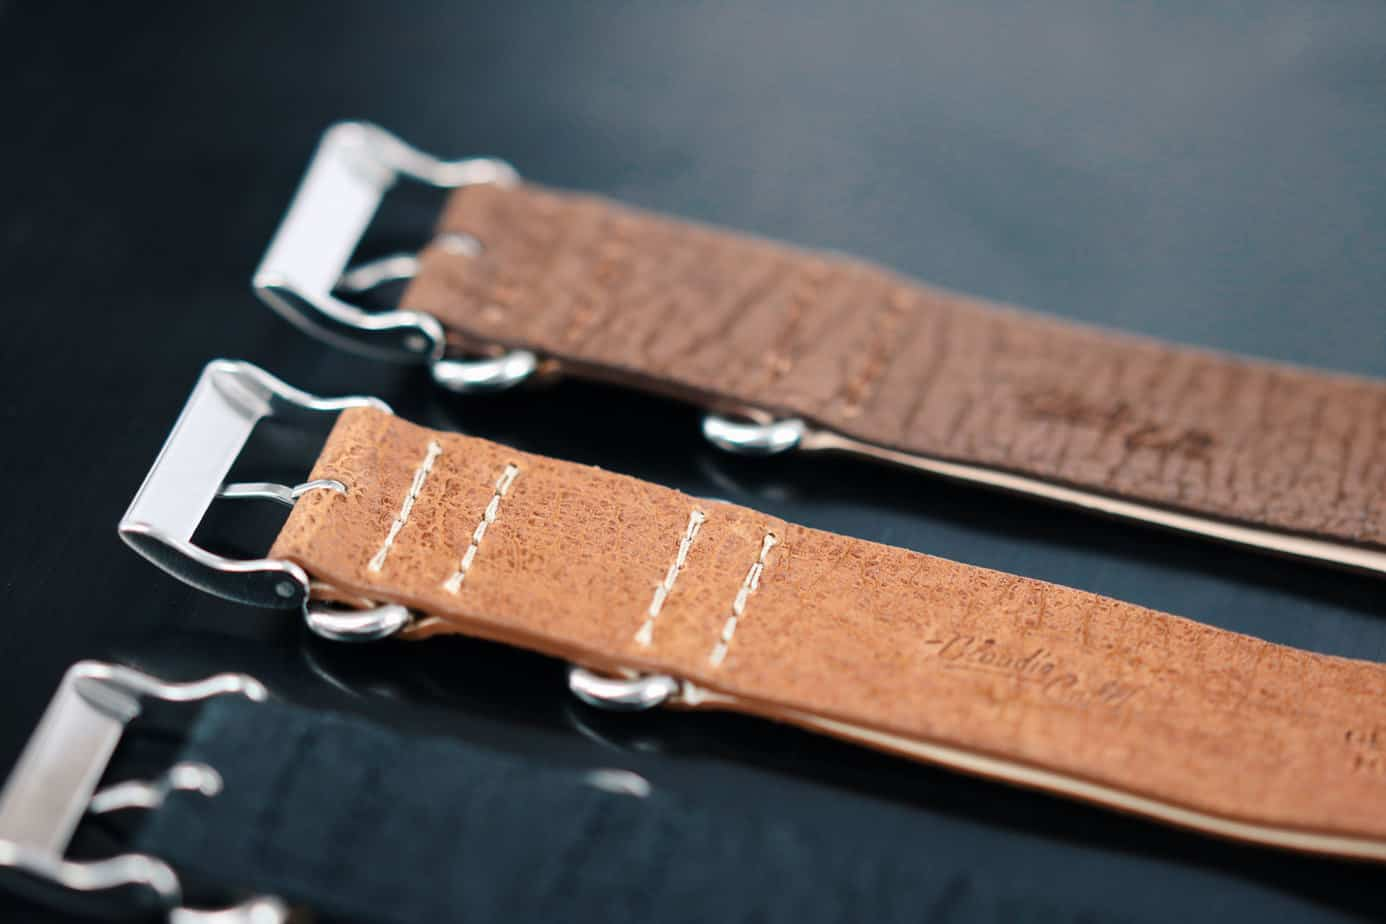 Discover all kinds of watch straps